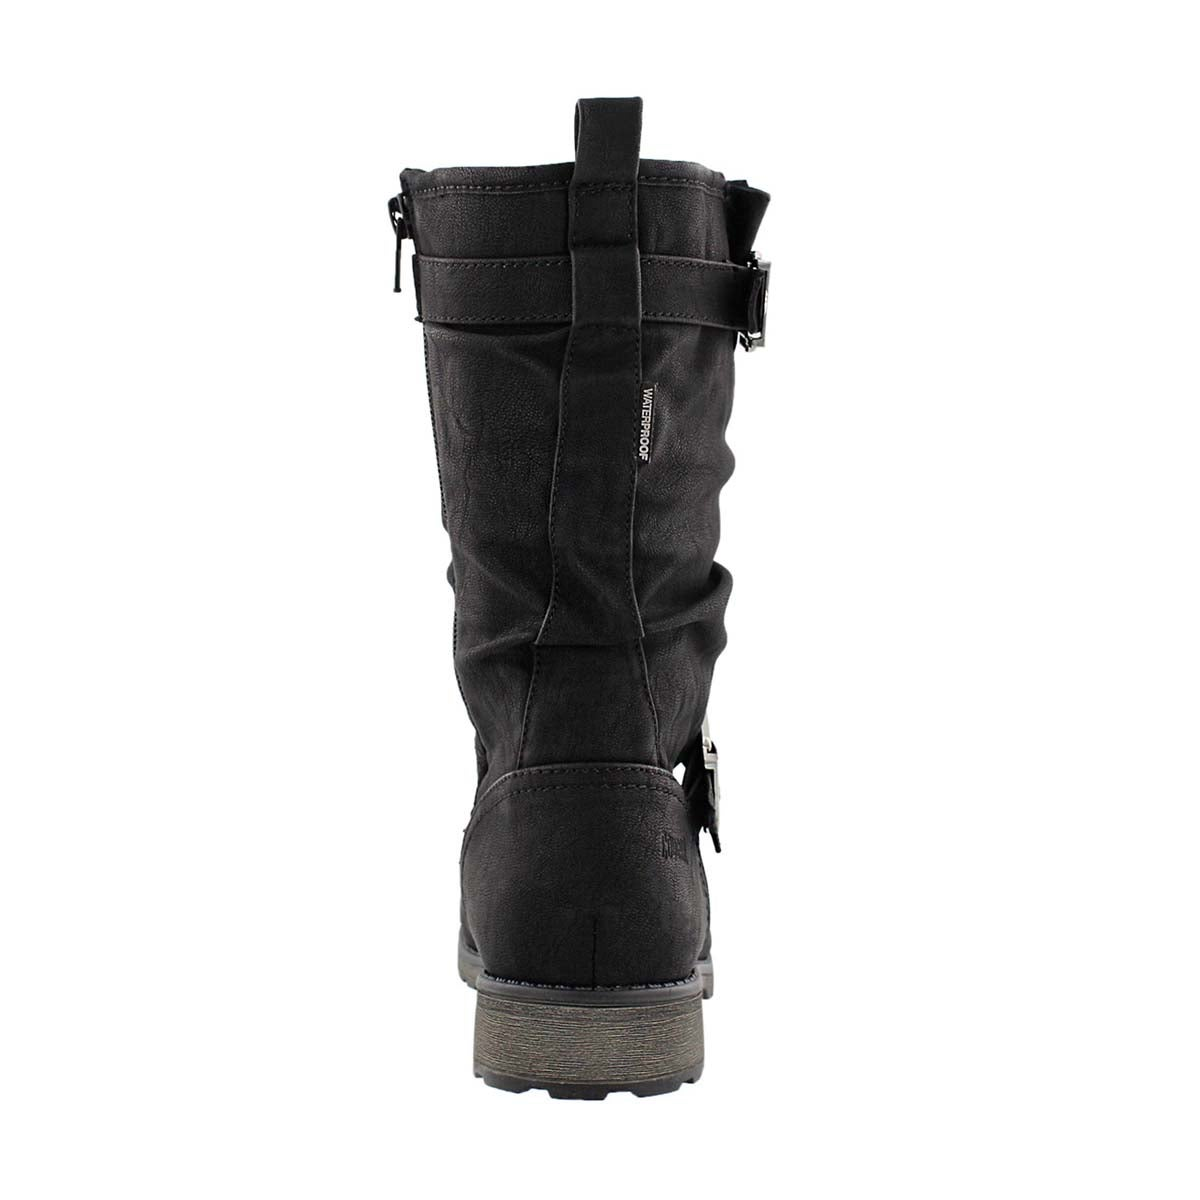 Grls Nota blk wpf casual boot